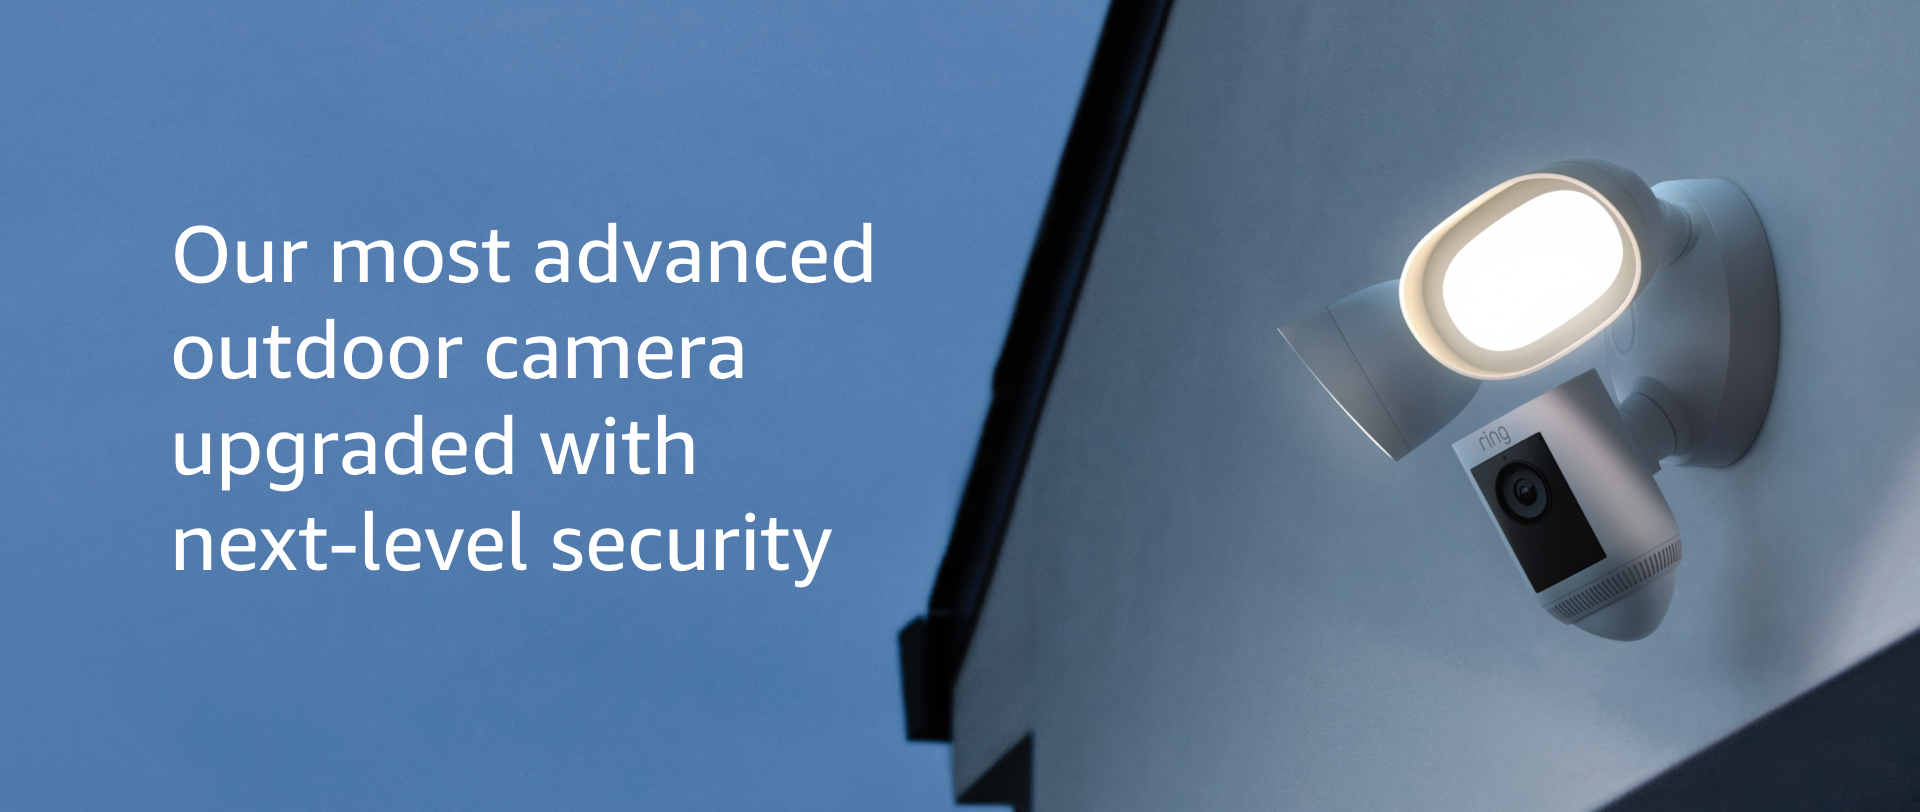 Our most advanced outdoor camera